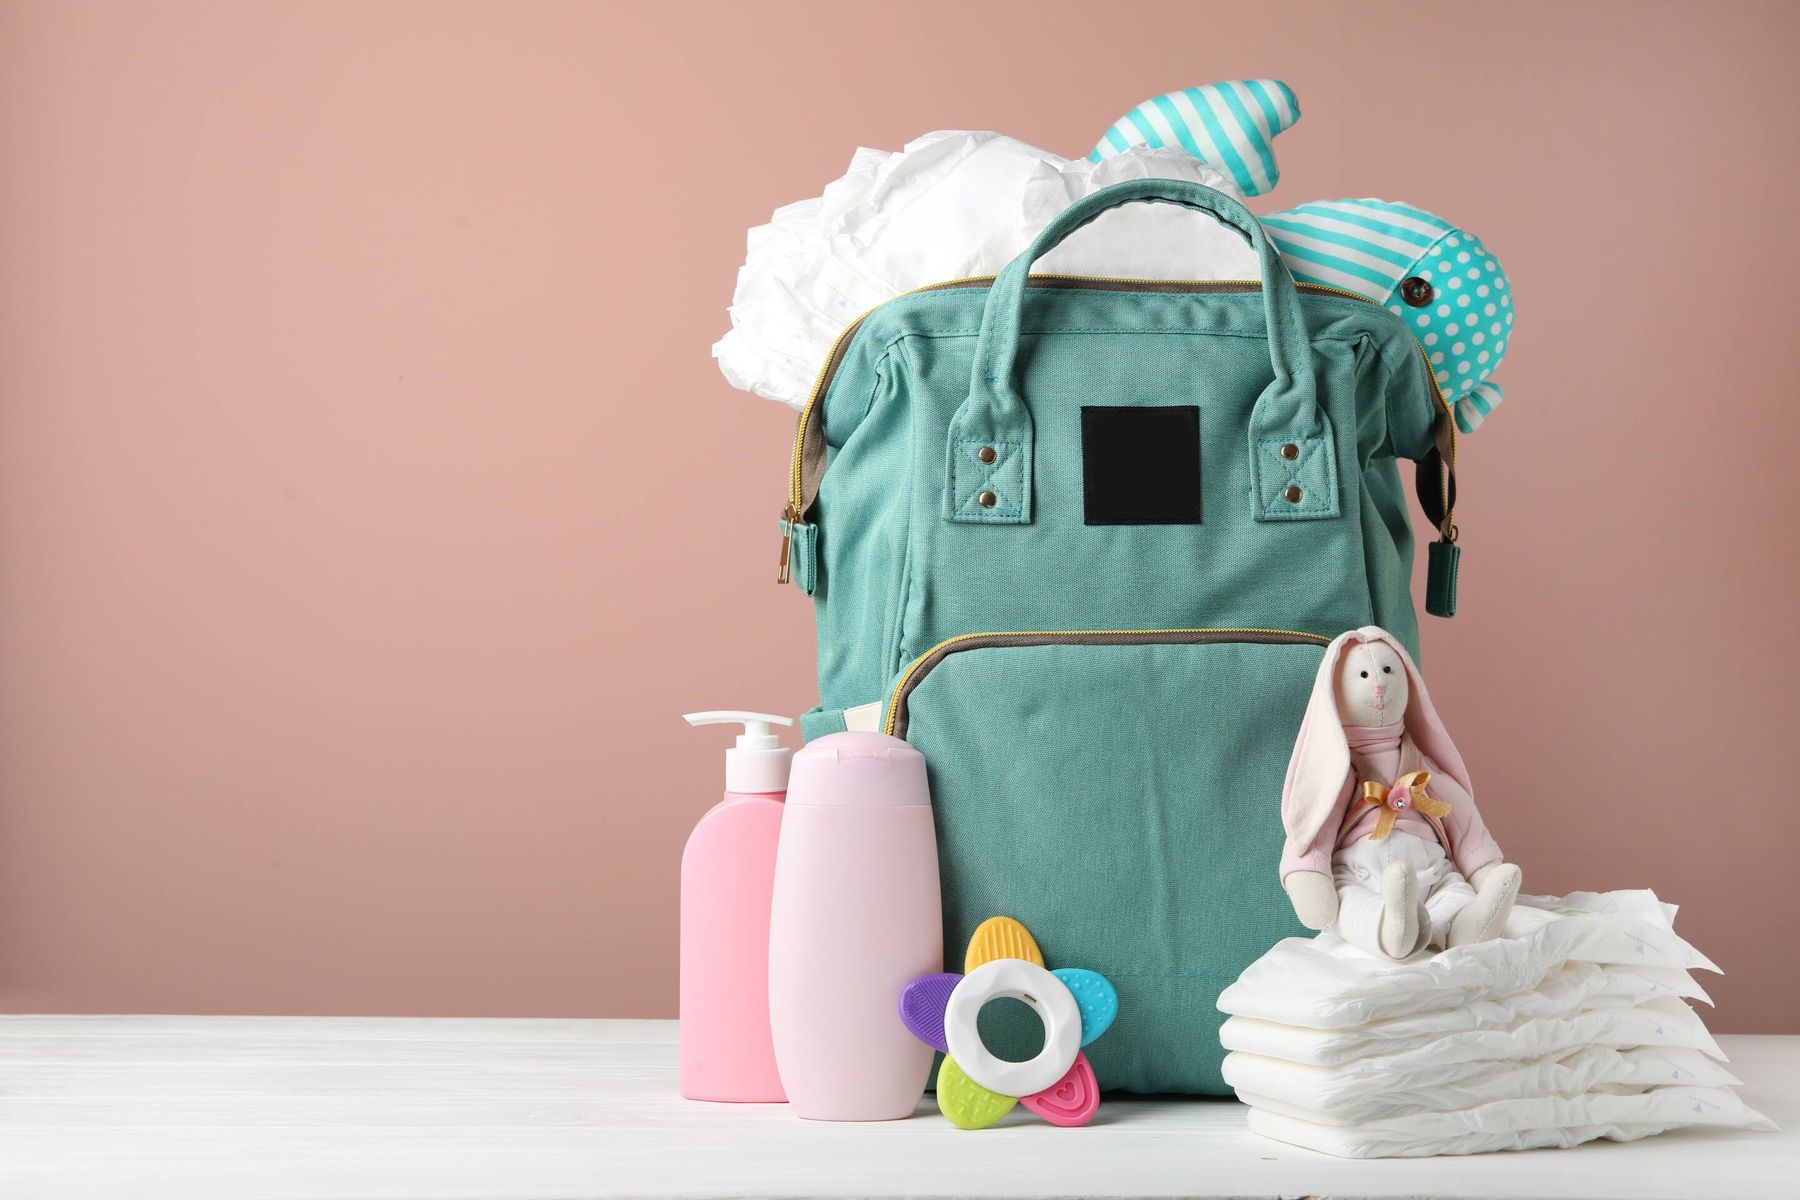 Baby's diaper bag too smelly? Here's how you can clean it